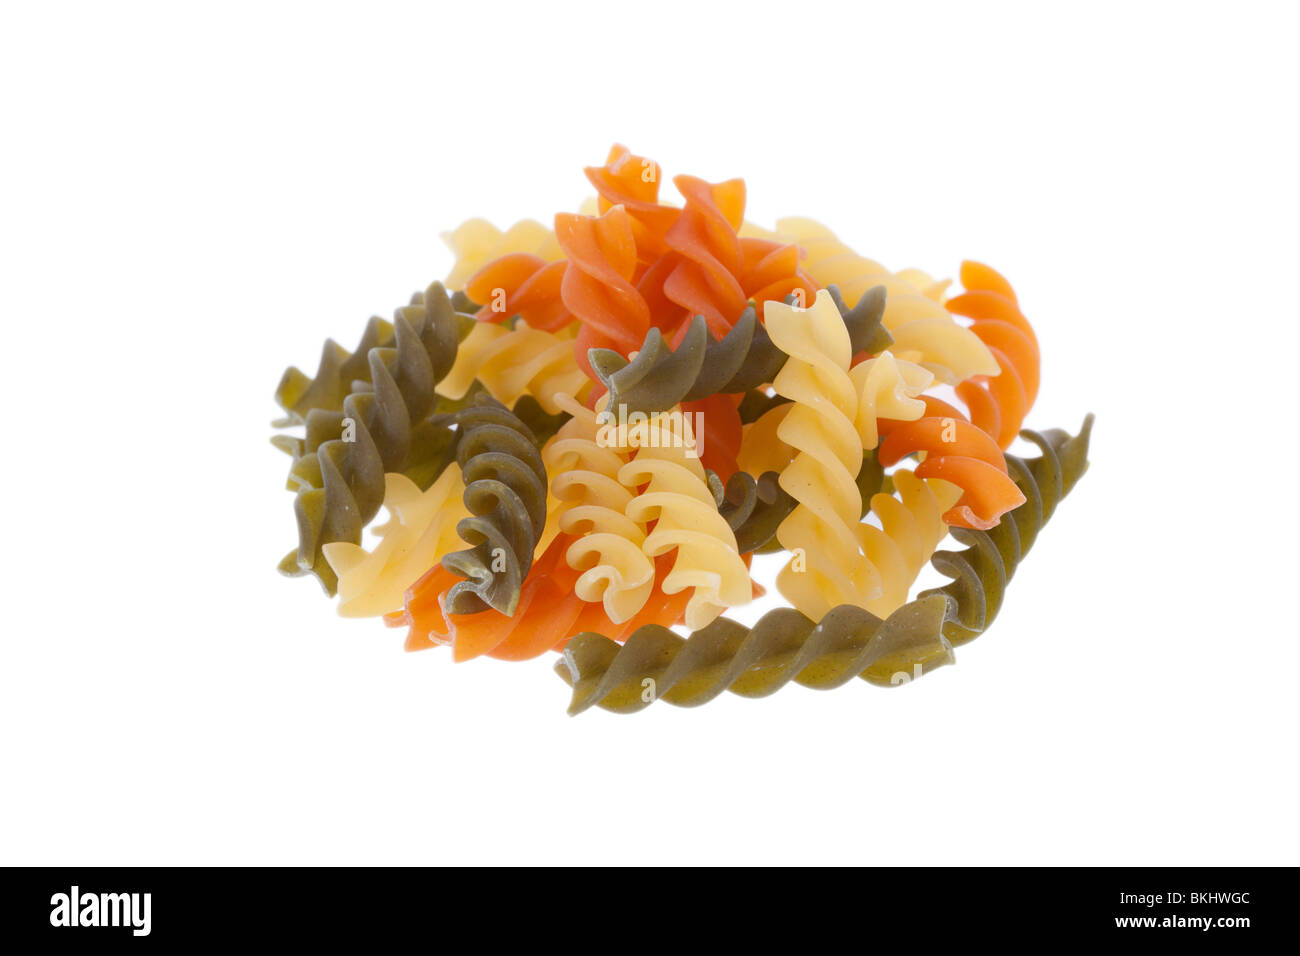 Tricolore fusilli pasta isolated on a white background - Stock Image